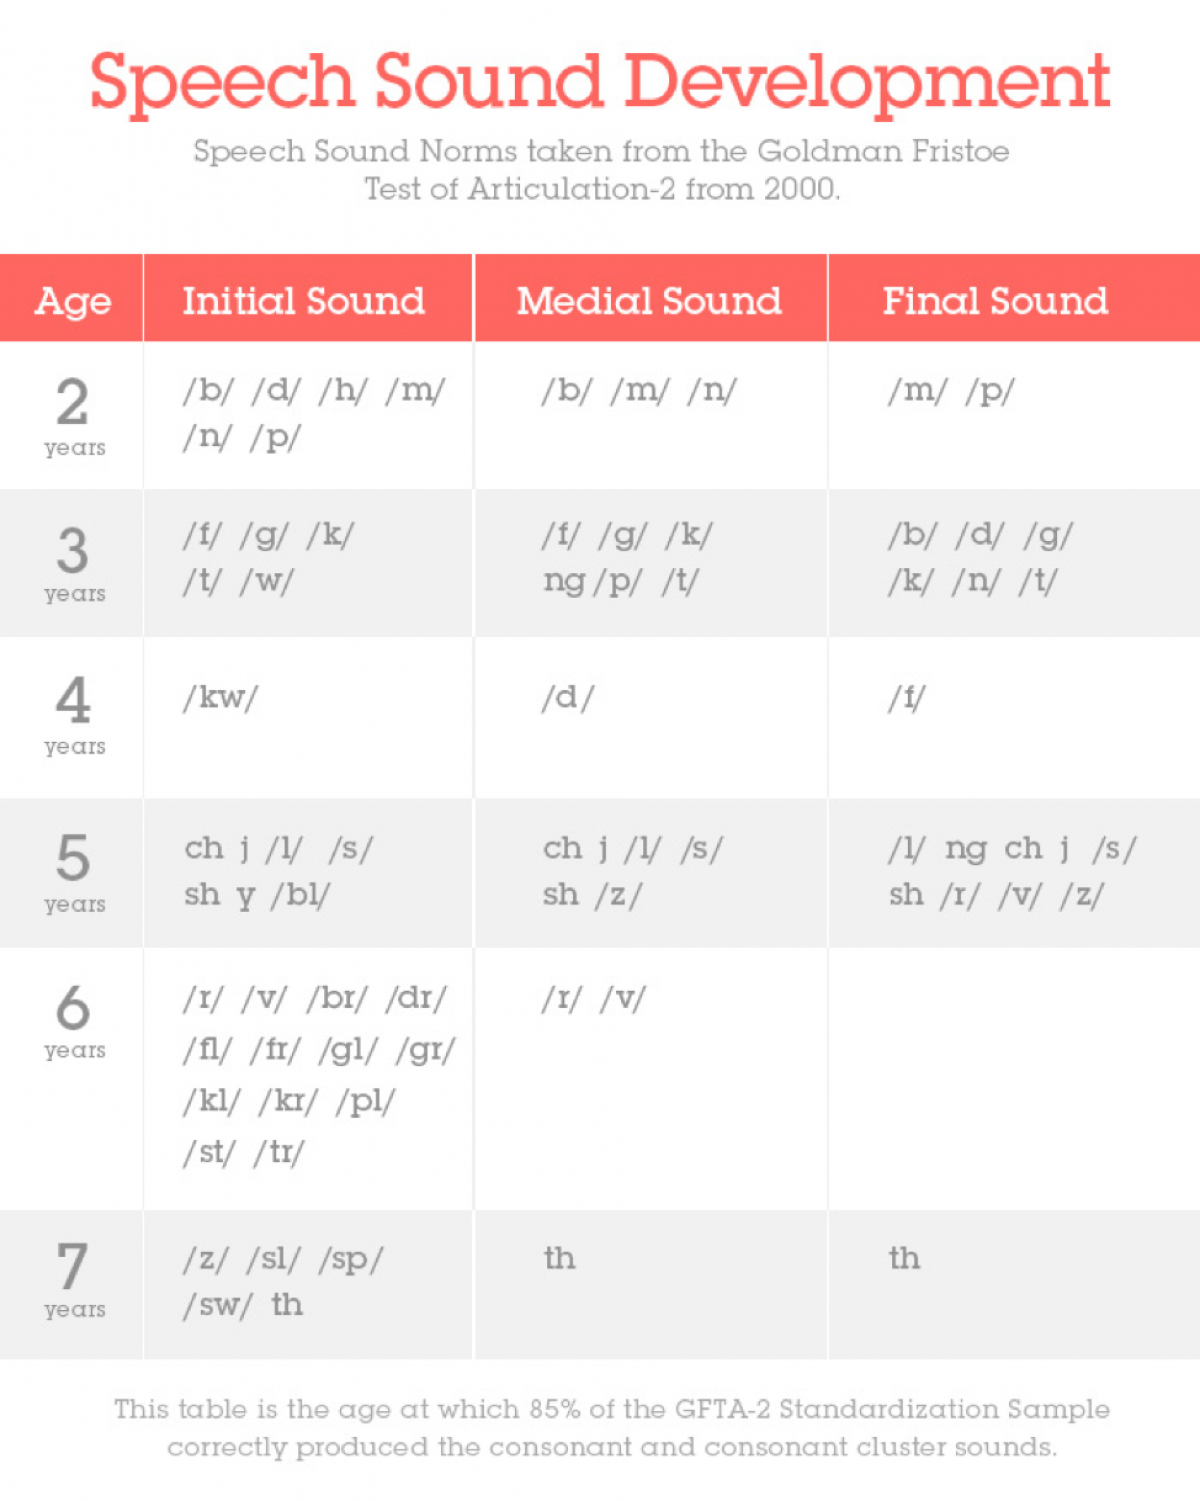 Table depicts clusters of sounds and the age range at which the sounds are generally correctly produced